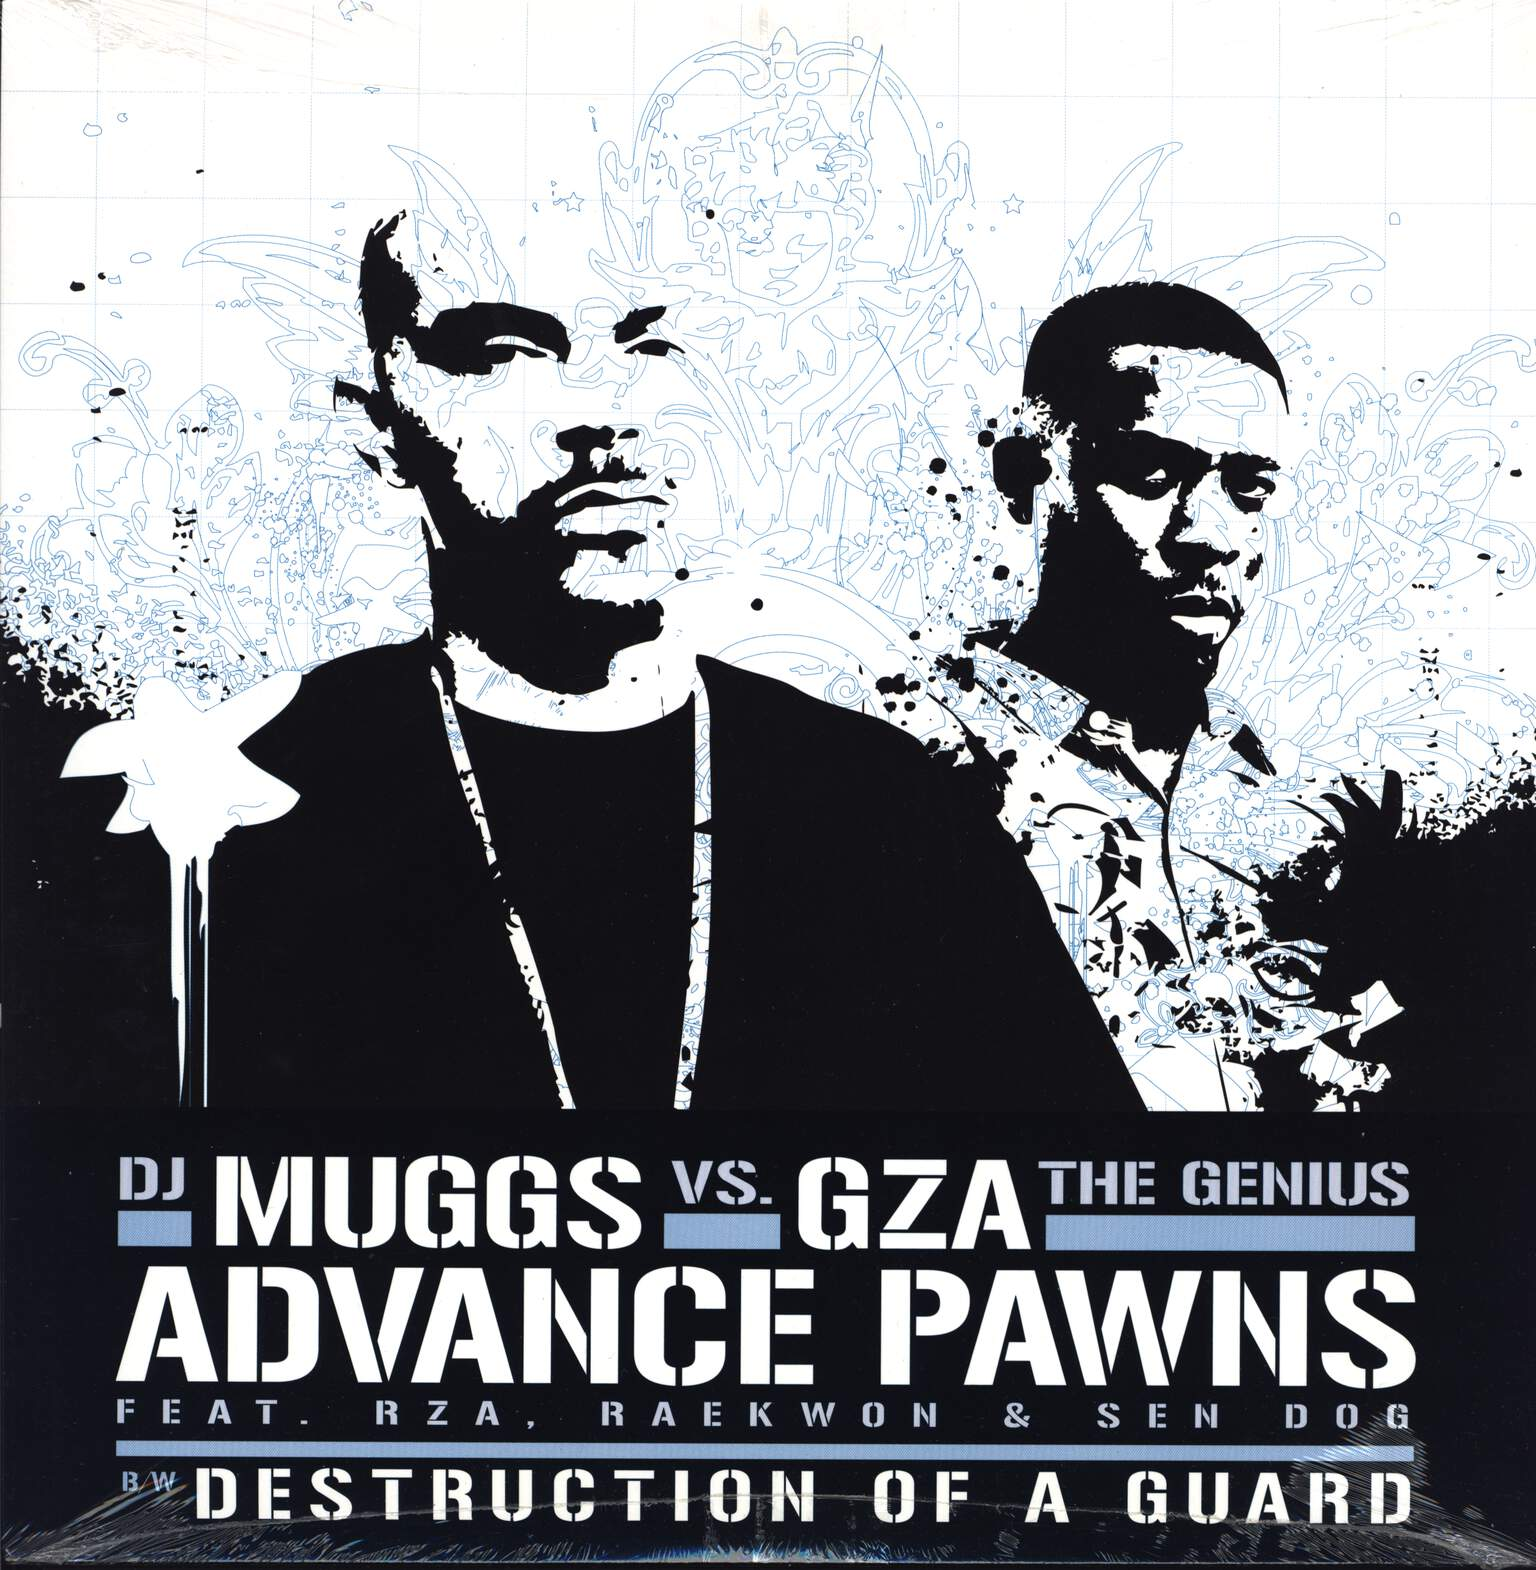 "DJ Muggs: Advance Pawns / Destruction Of A Guard, 12"" Maxi Single (Vinyl)"